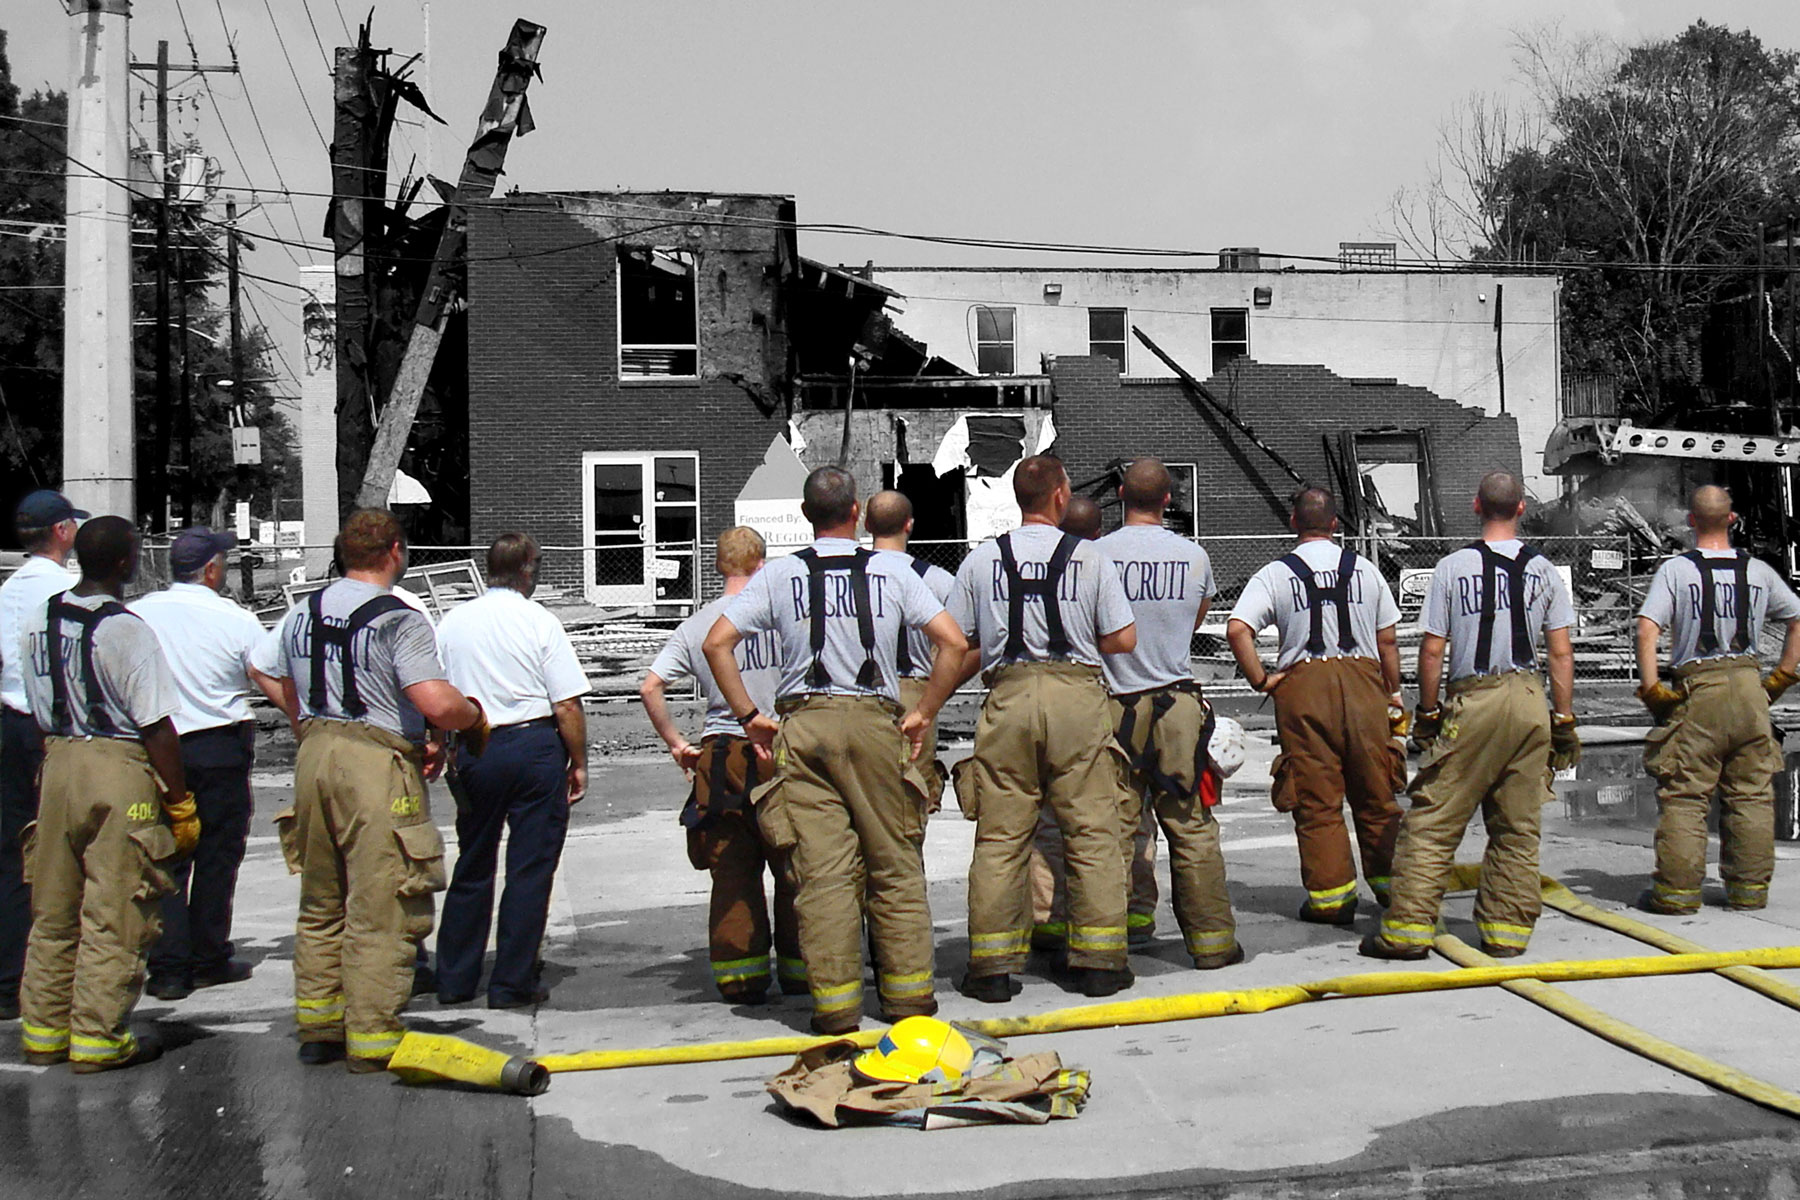 Firefighters looking at a burned building